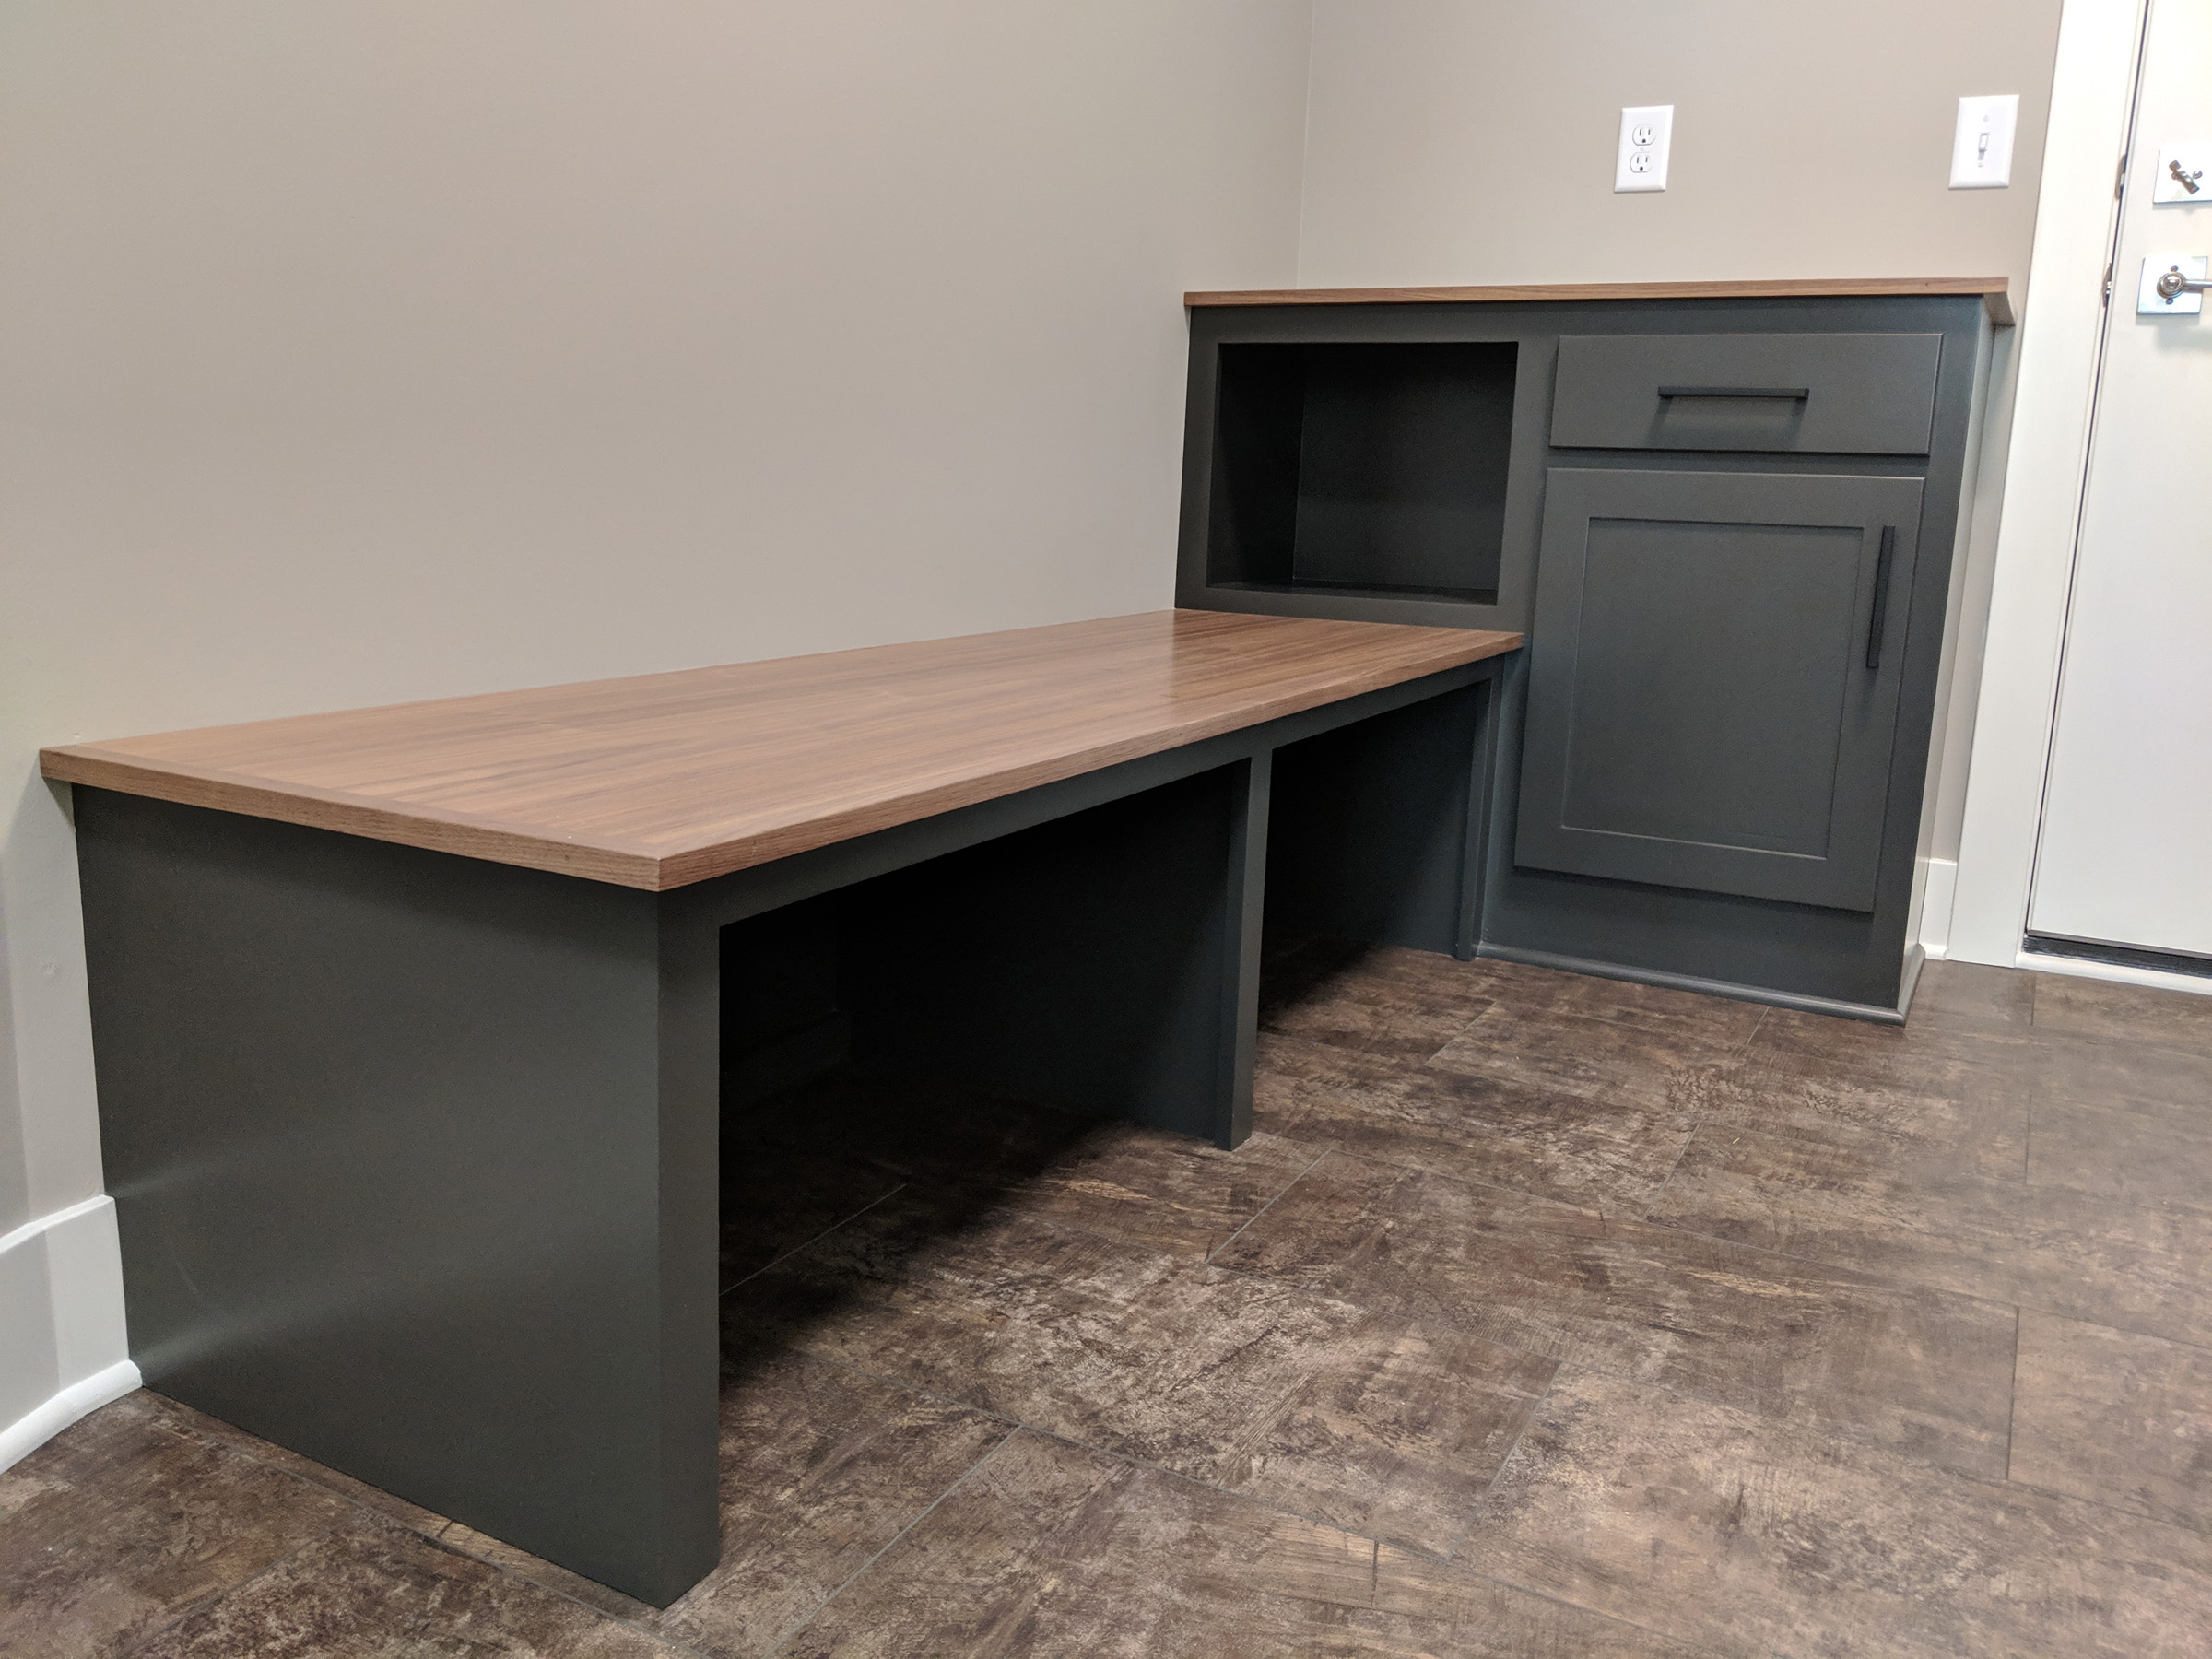 Mudroom with built-in bench and storage